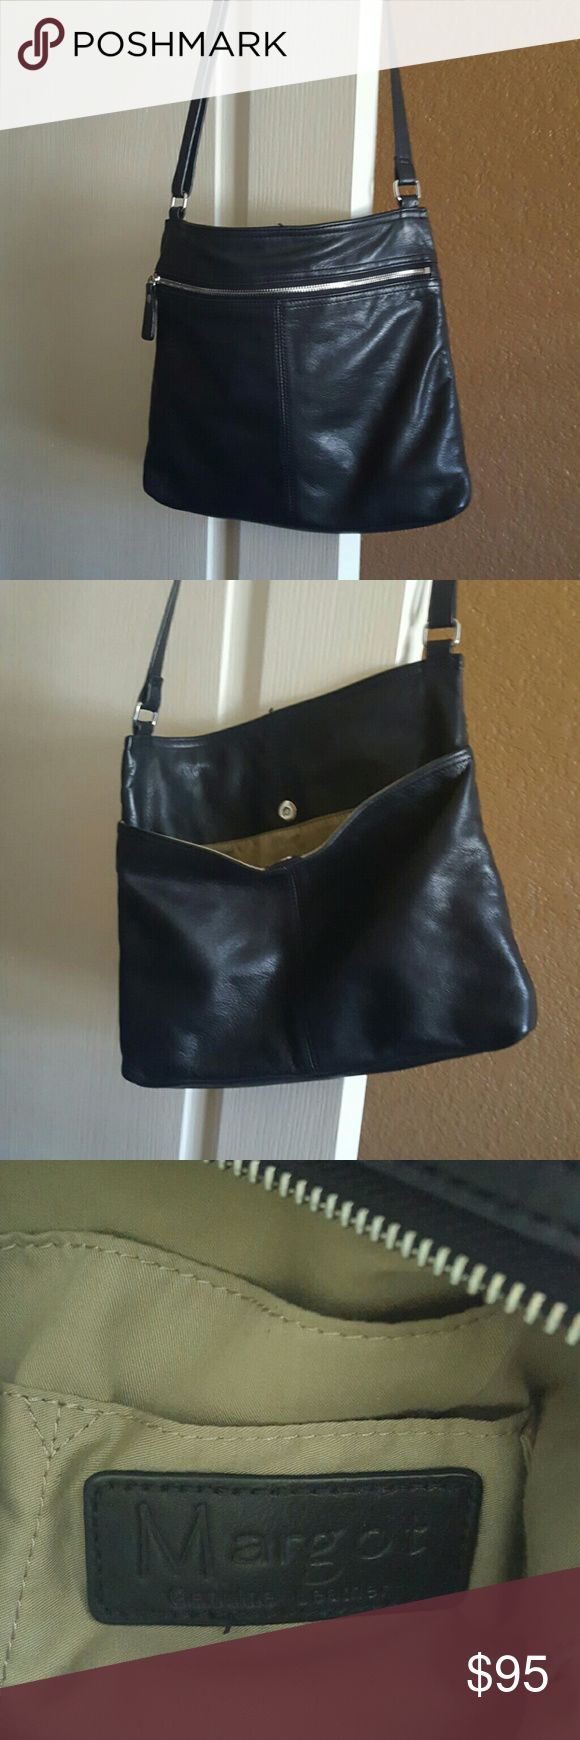 Leather Purse 13x11 crossbody leather purse margot Bags Crossbody Bags